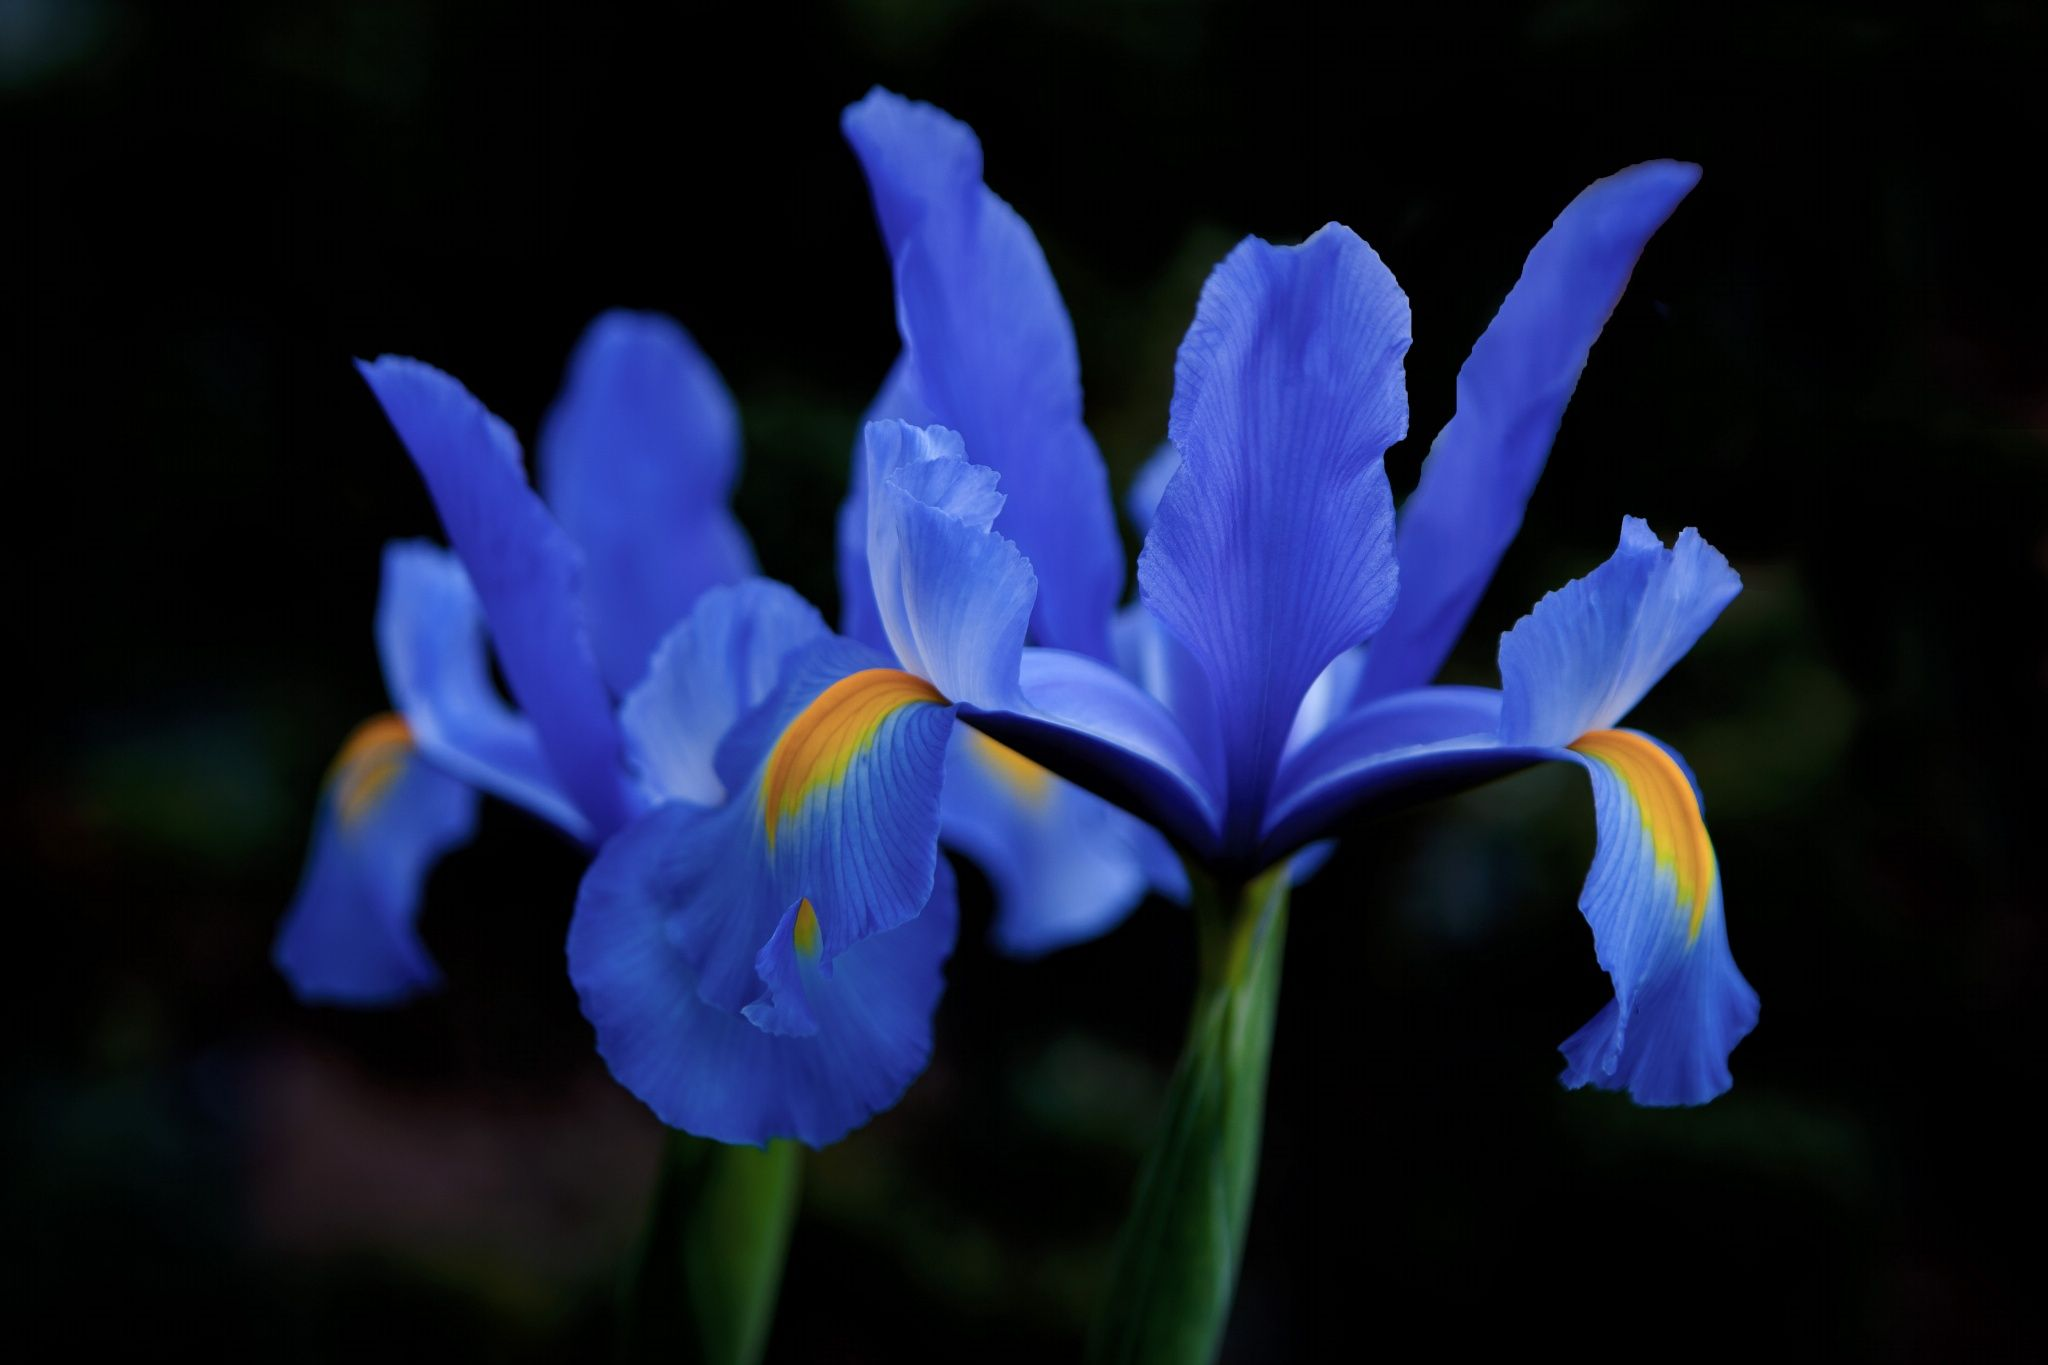 Iridaceae by Richard Kam on 500px, 96.5 so far, CameraCanon EOS-1Ds Mark III Focal Length52mm Shutter Speed1/80 s Aperturef/3.5 ISO/Film200 CategoryNature UploadedAbout 6 hours ago TakenSep 17, 2014